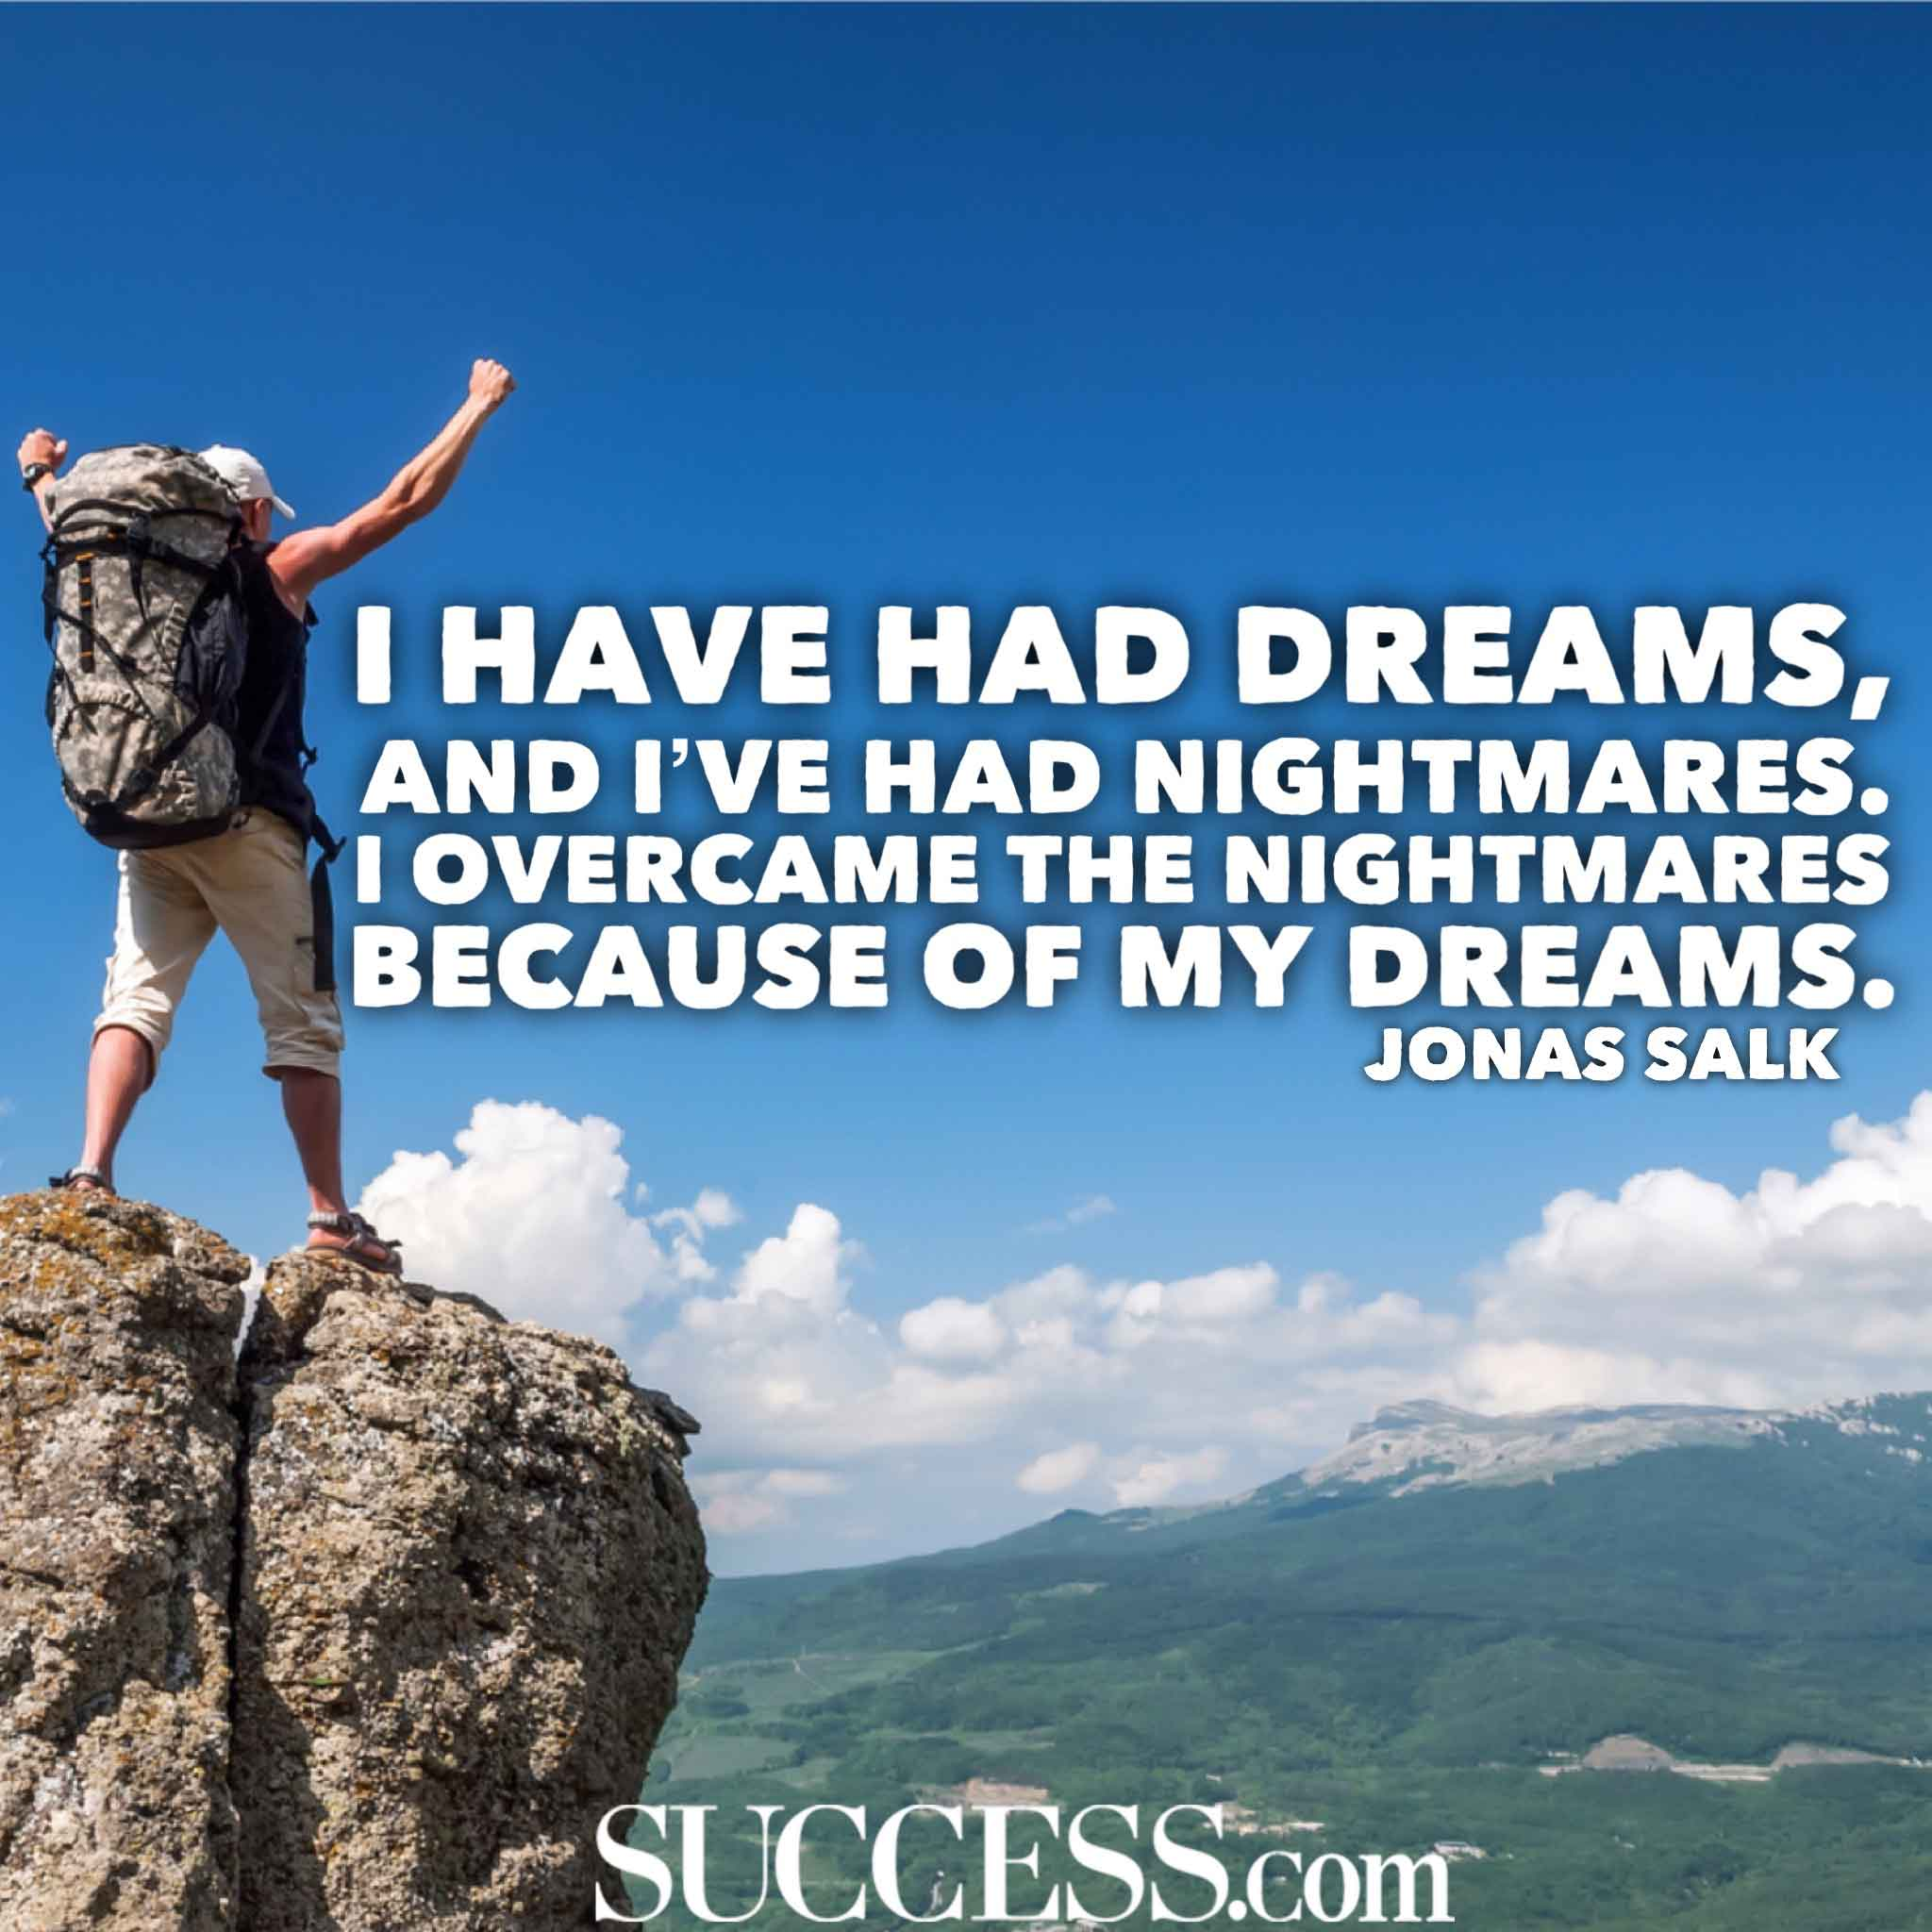 15 Inspiring Quotes About Being a Dreamer